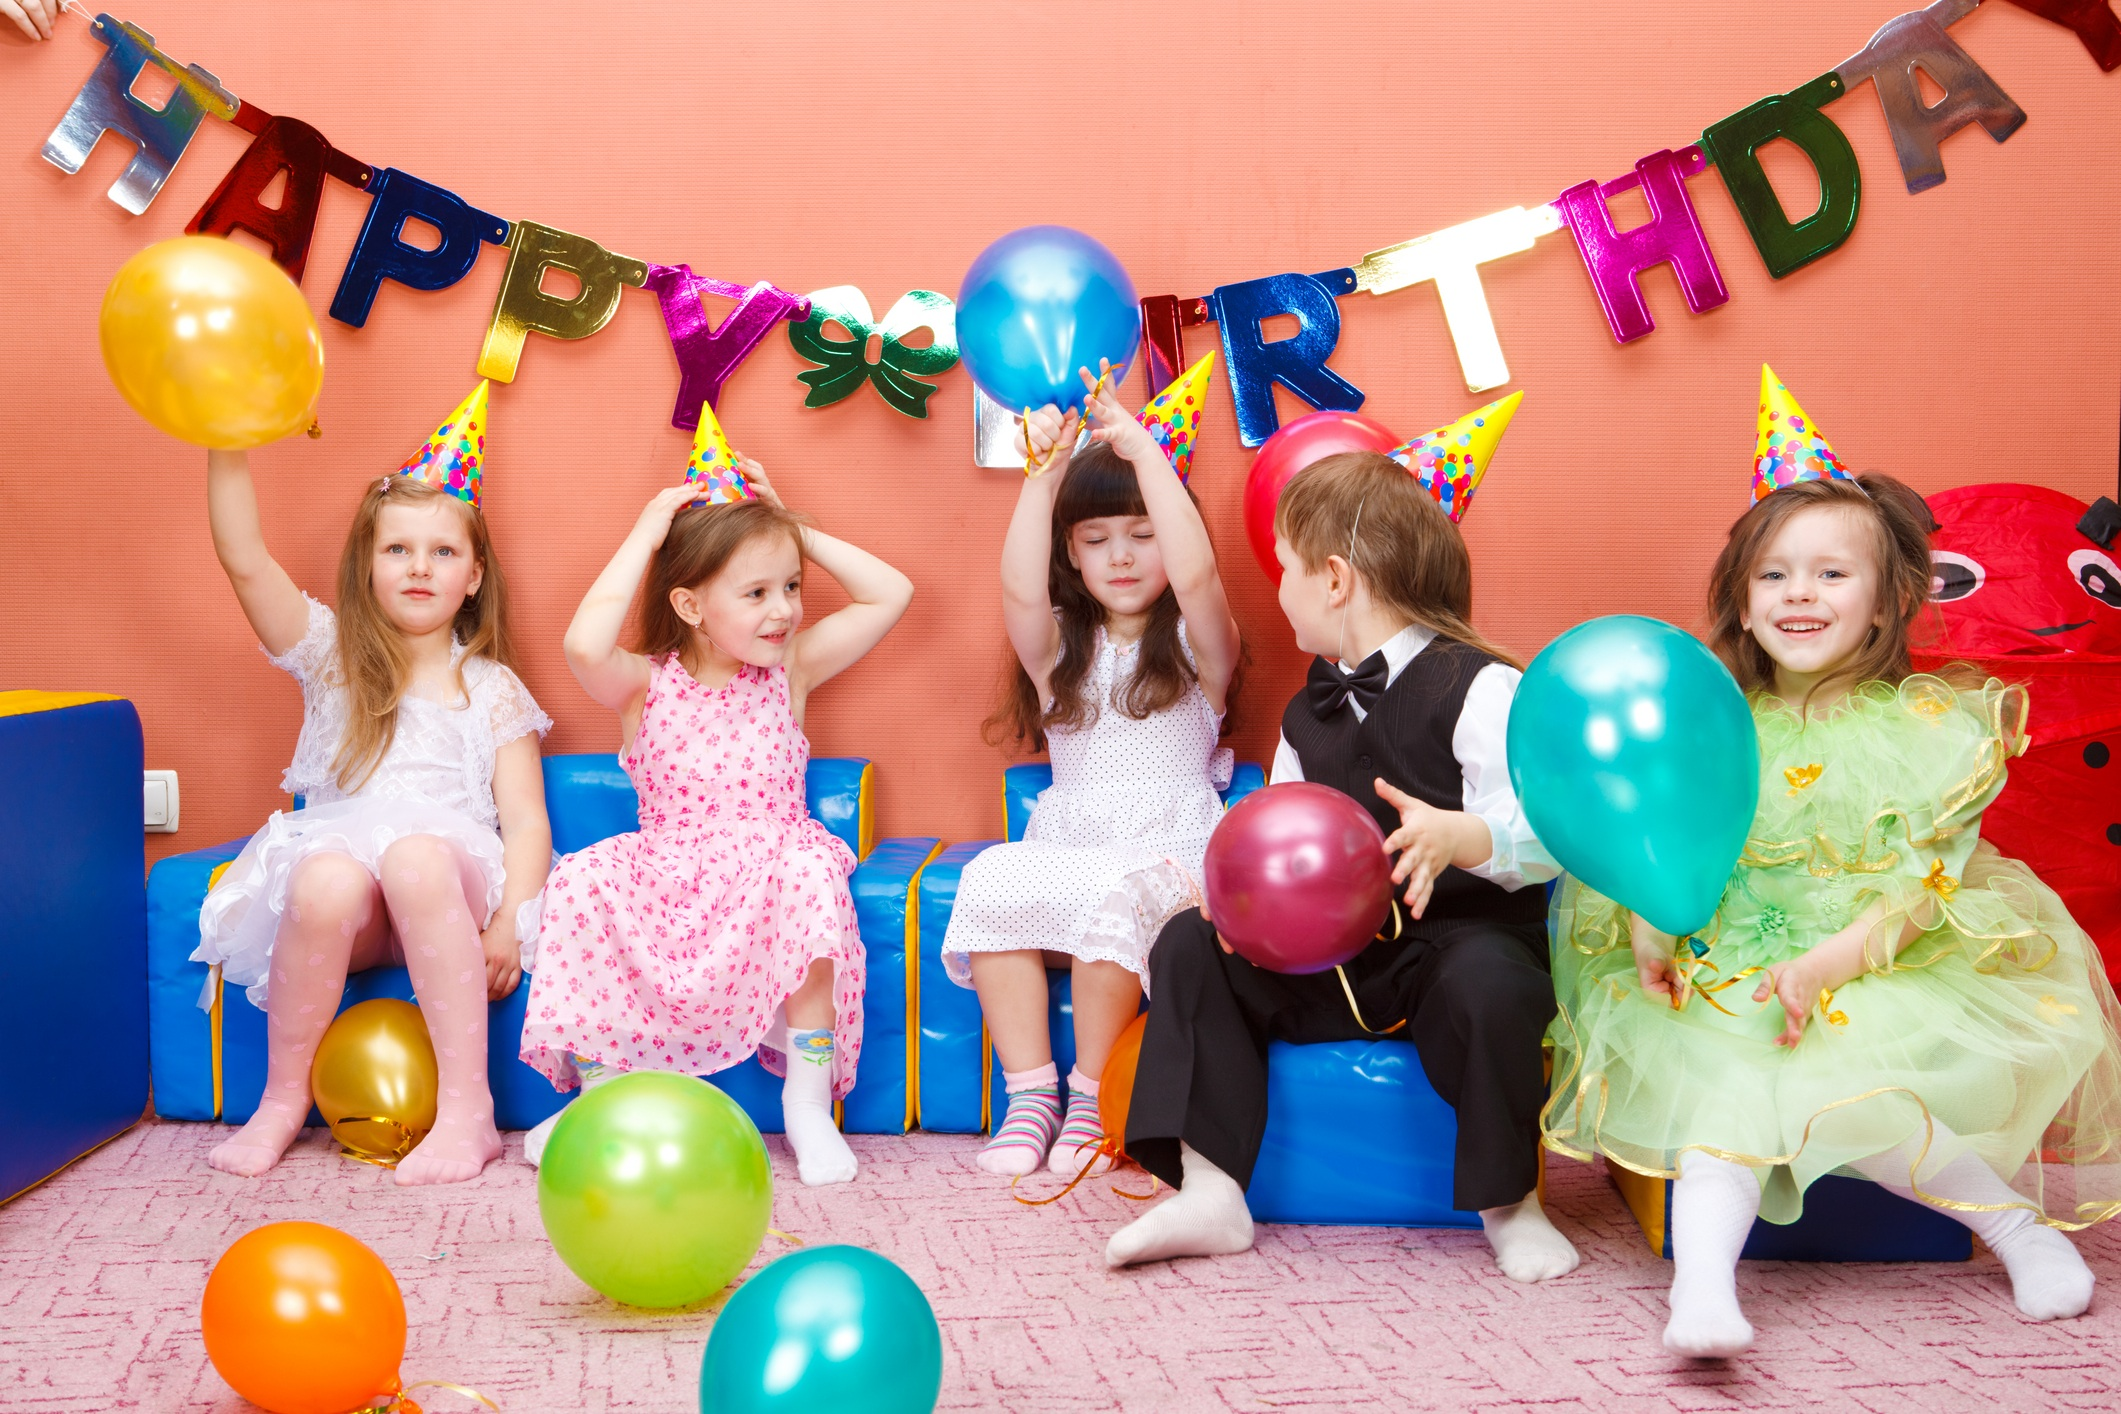 children's games birthday party ideas ; Birthday-party-ideas-for-11-12-year-old-Tweens